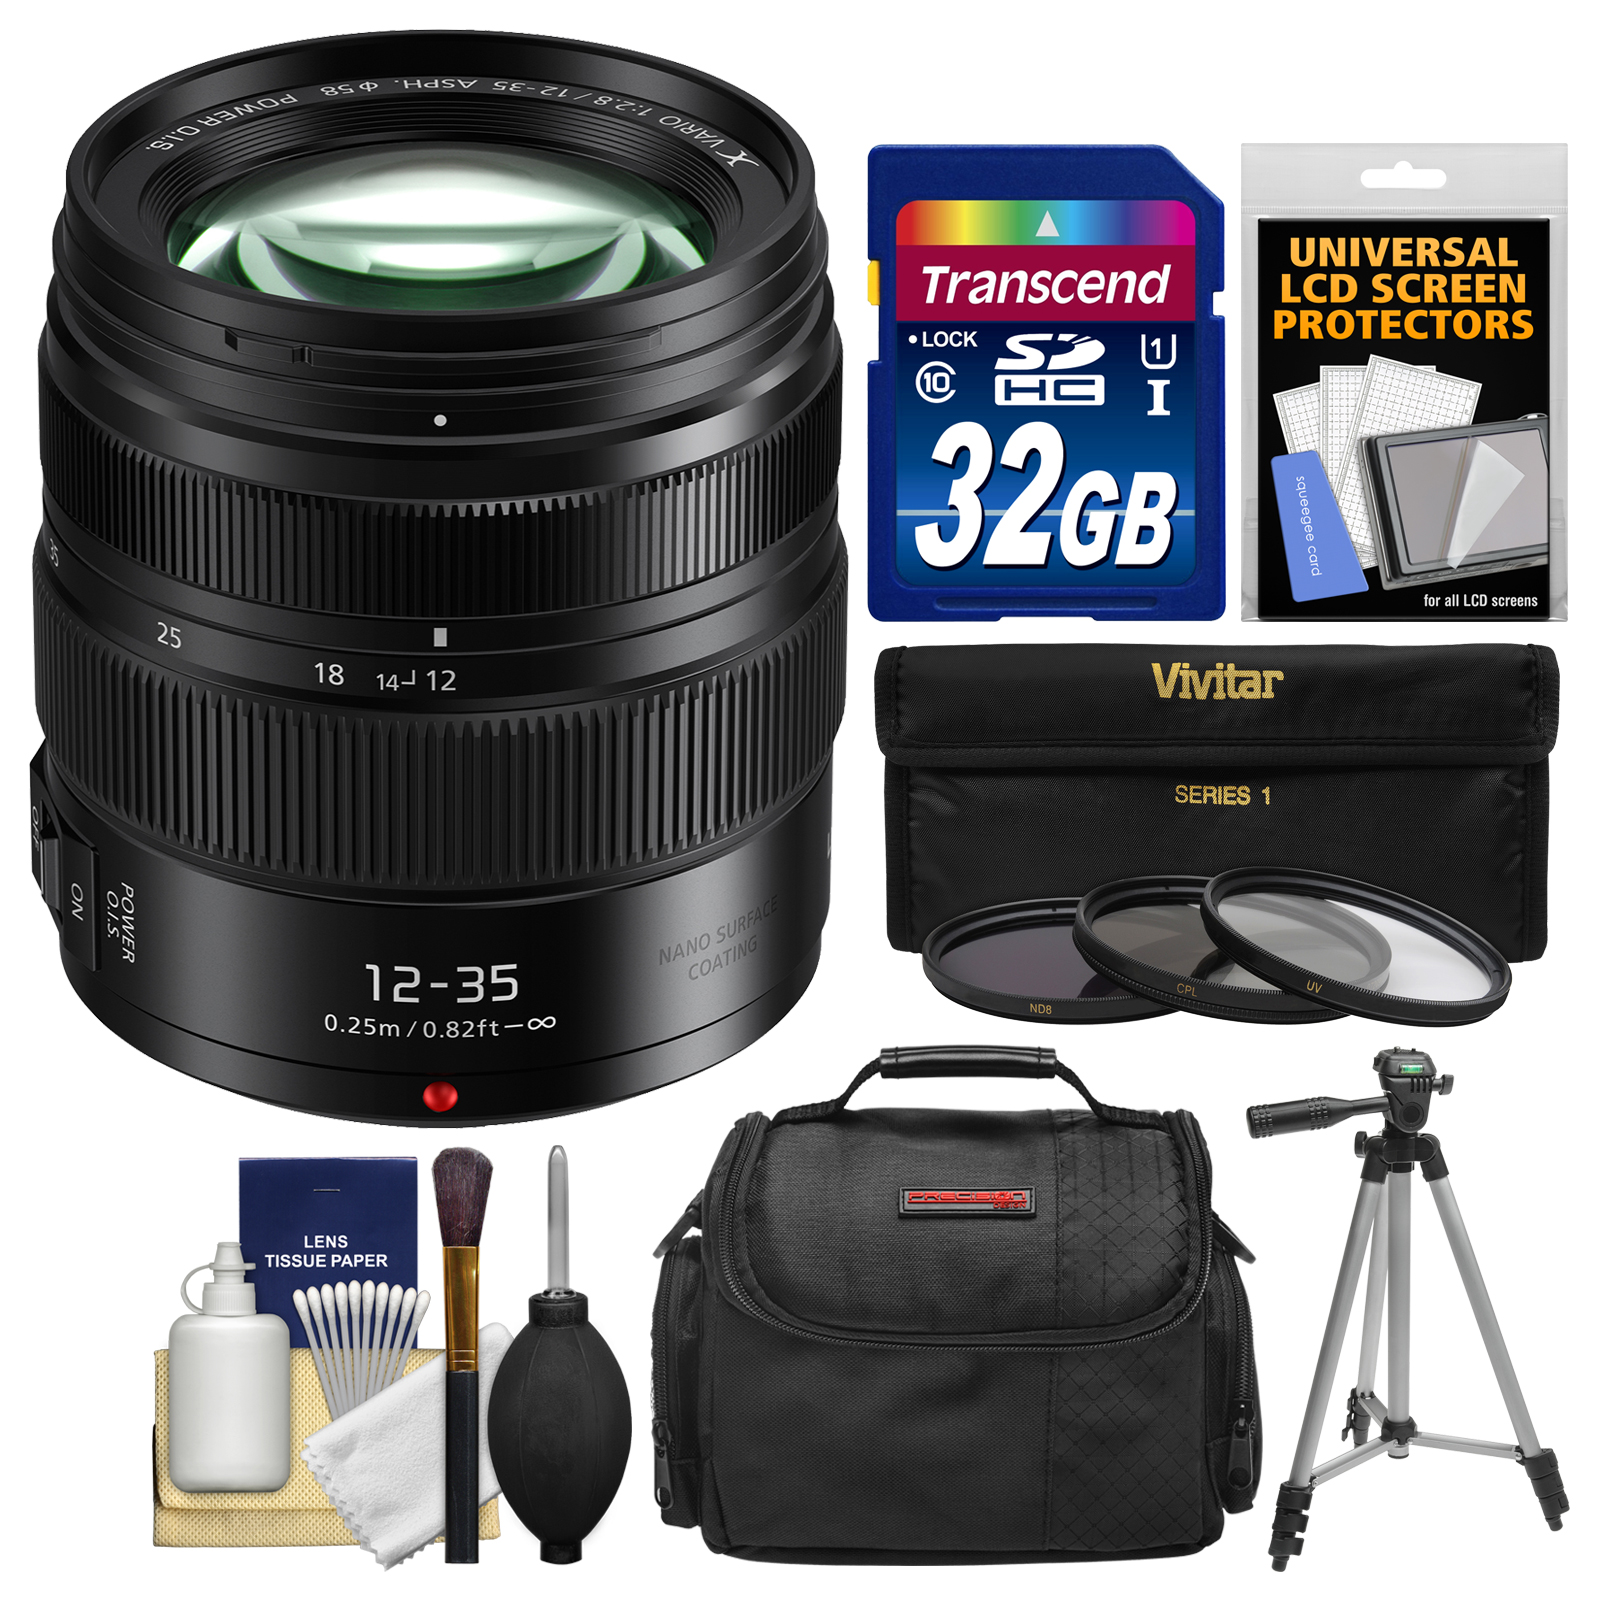 Panasonic Lumix G X Vario 12-35mm f/2.8 II ASPH Power OIS Lens with 32GB Card + Case + 3 UV/CPL/ND8 Filters + Tripod Kit for G7, G85, GH4, GH5, GX7, GX8, GX85, GX850 Camera